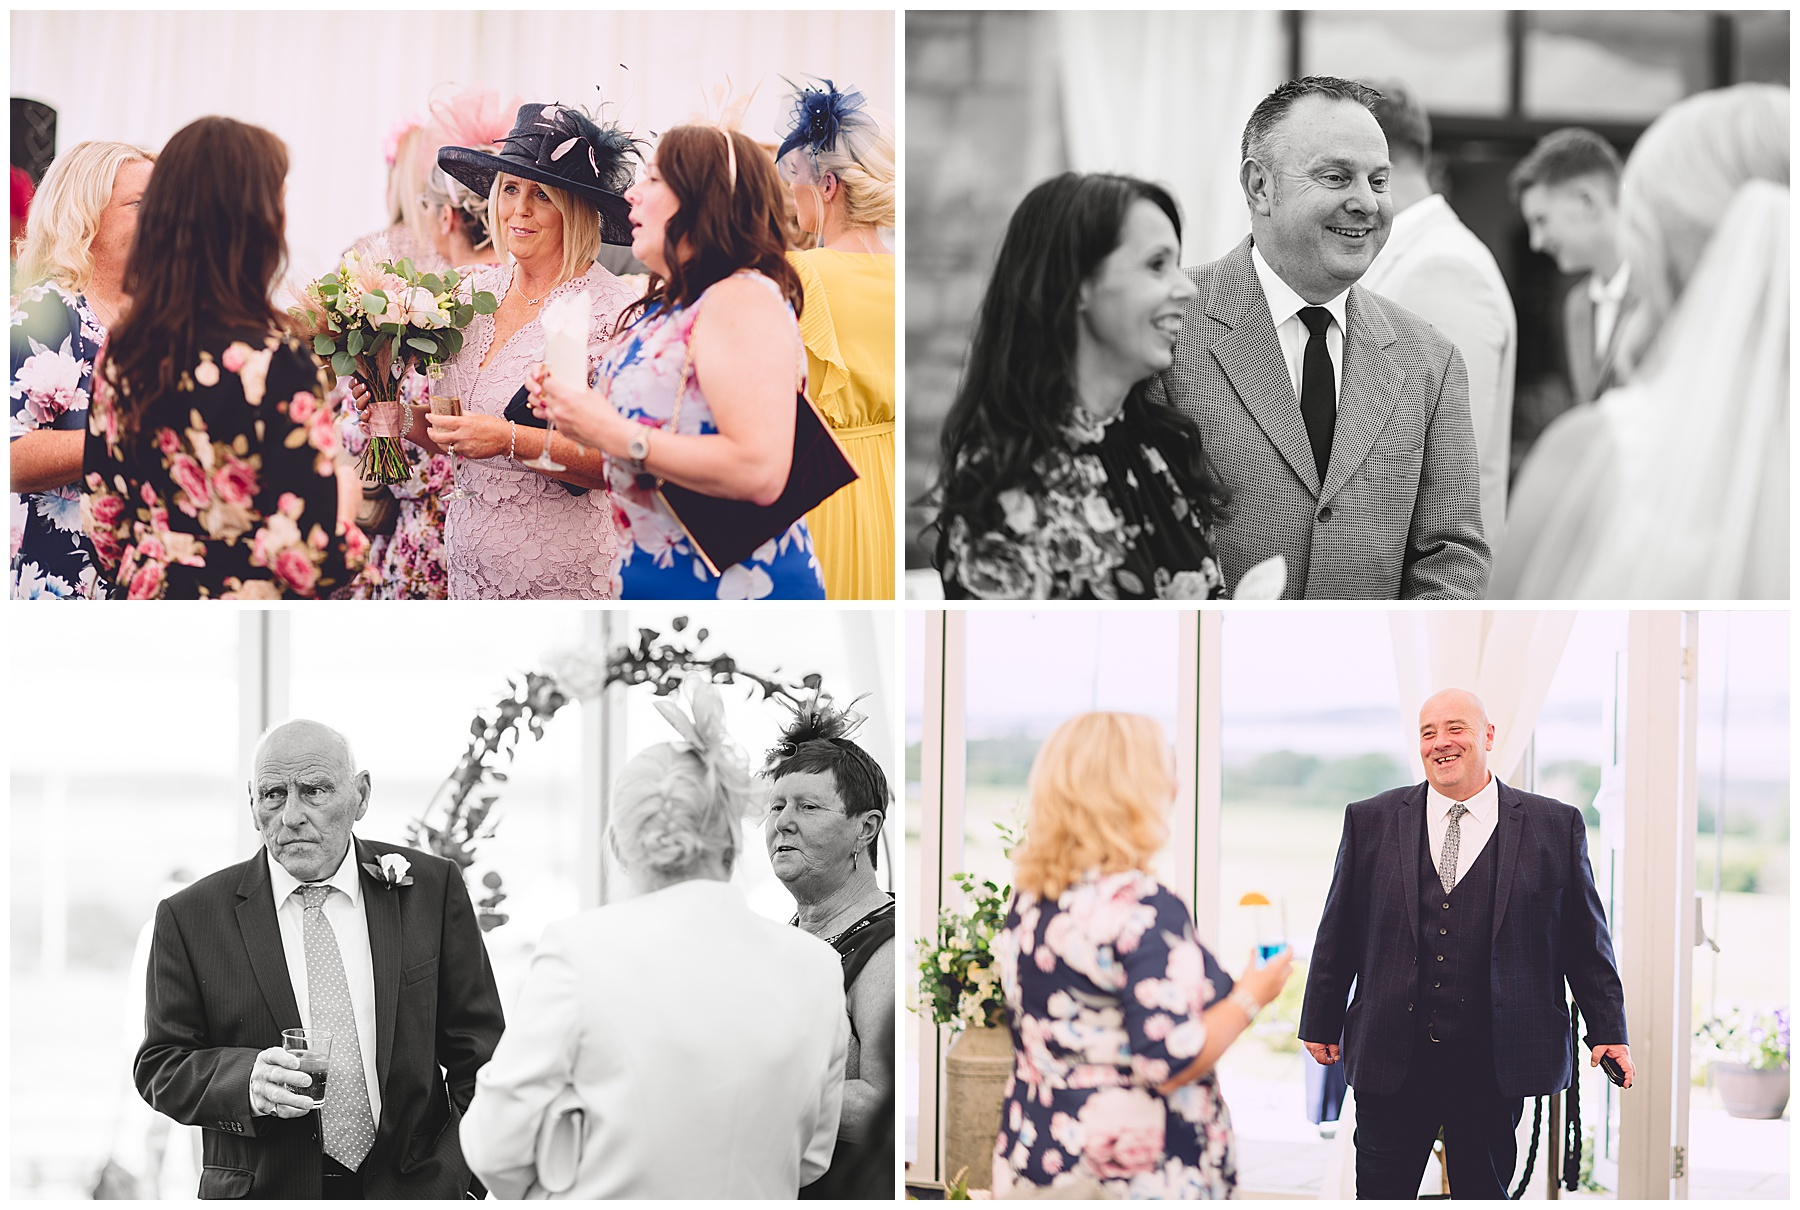 Wedding Guests at Ocean View Gower